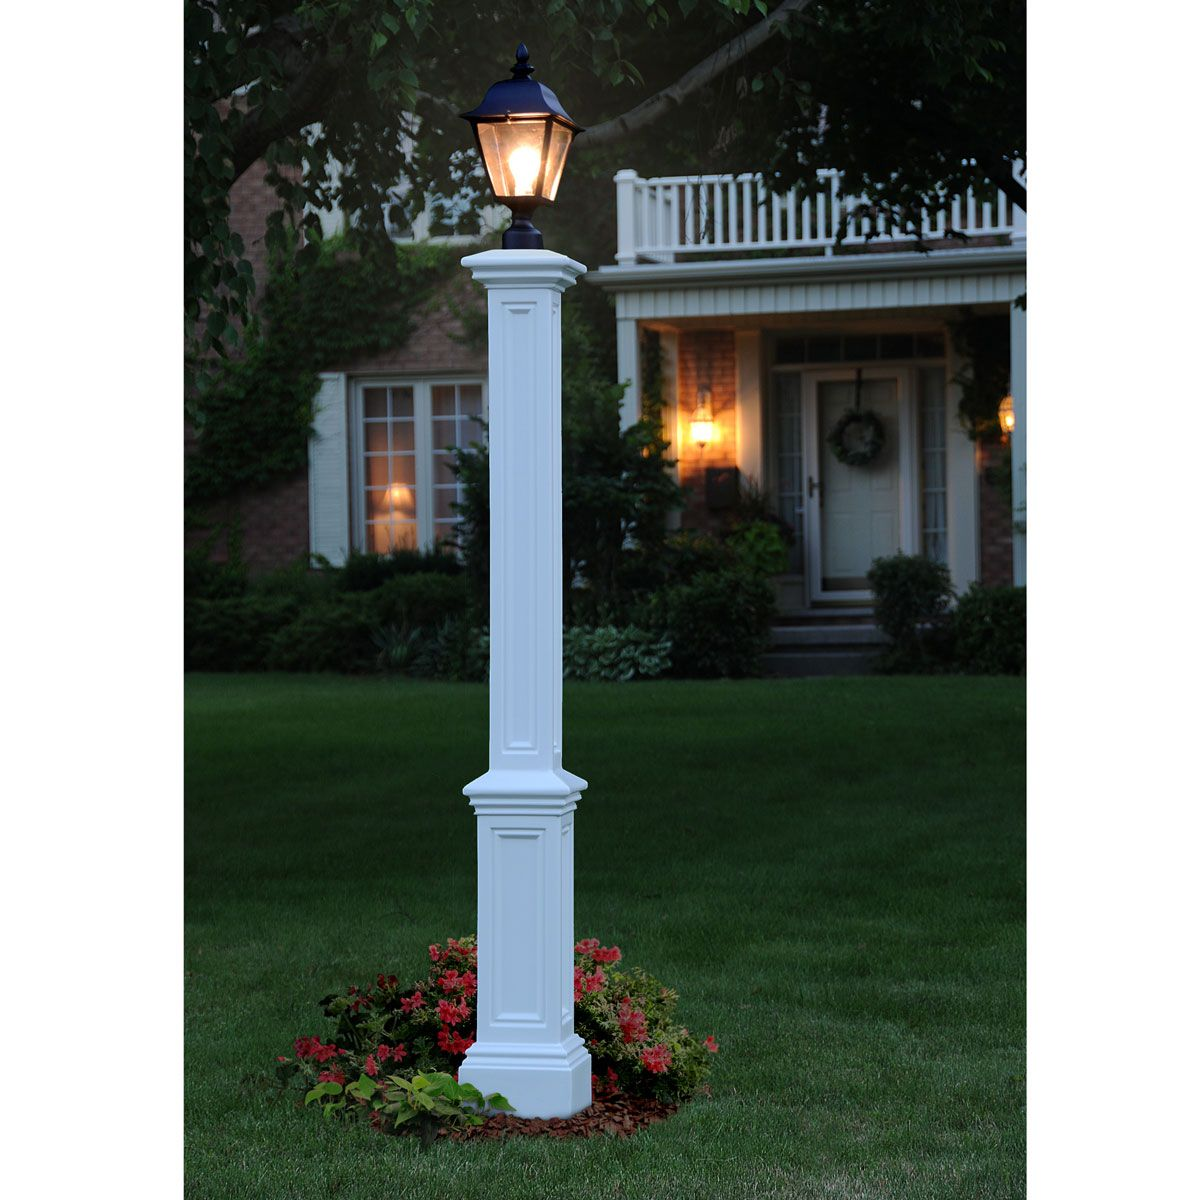 9 1 2 Inch W X 9 1 2 Inch D X 72 Inch H Signature Lamp Post Post Mount Outdoor Lamp Posts Lantern Post Outdoor Lighting